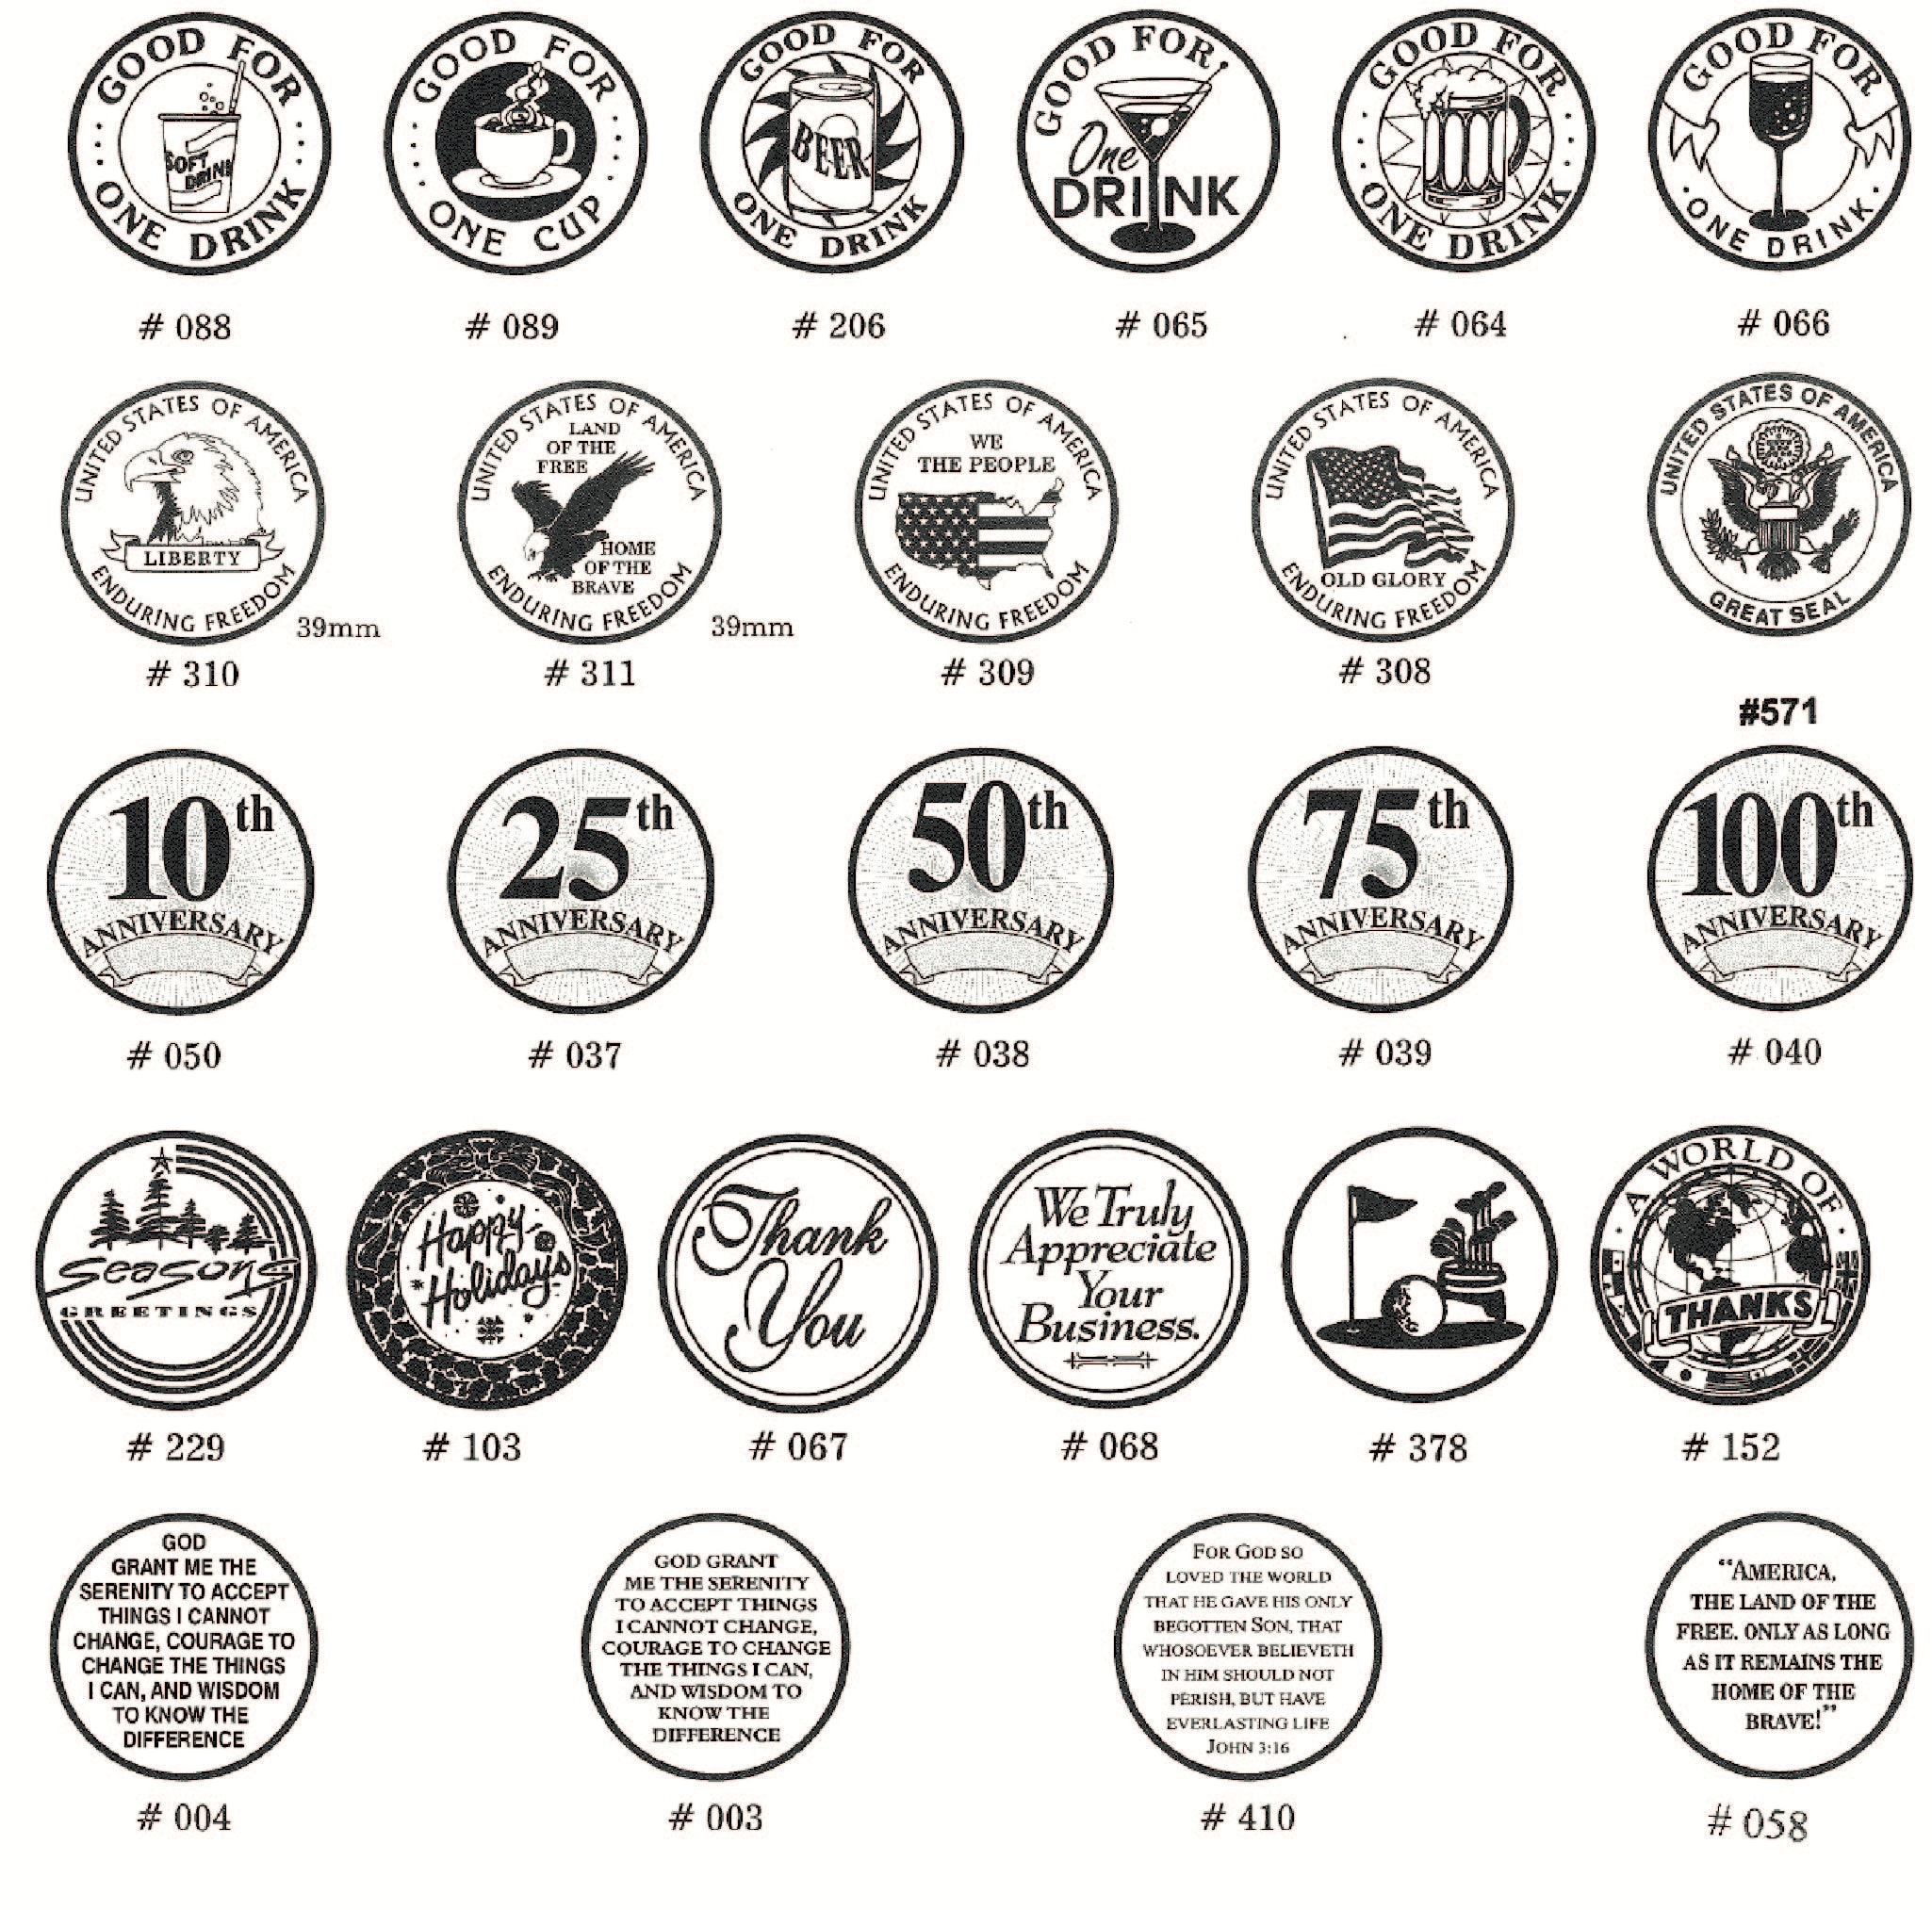 http://files.b-token.ca/files/289/original/Aluminium tokens standard designs.jpg?1568724468